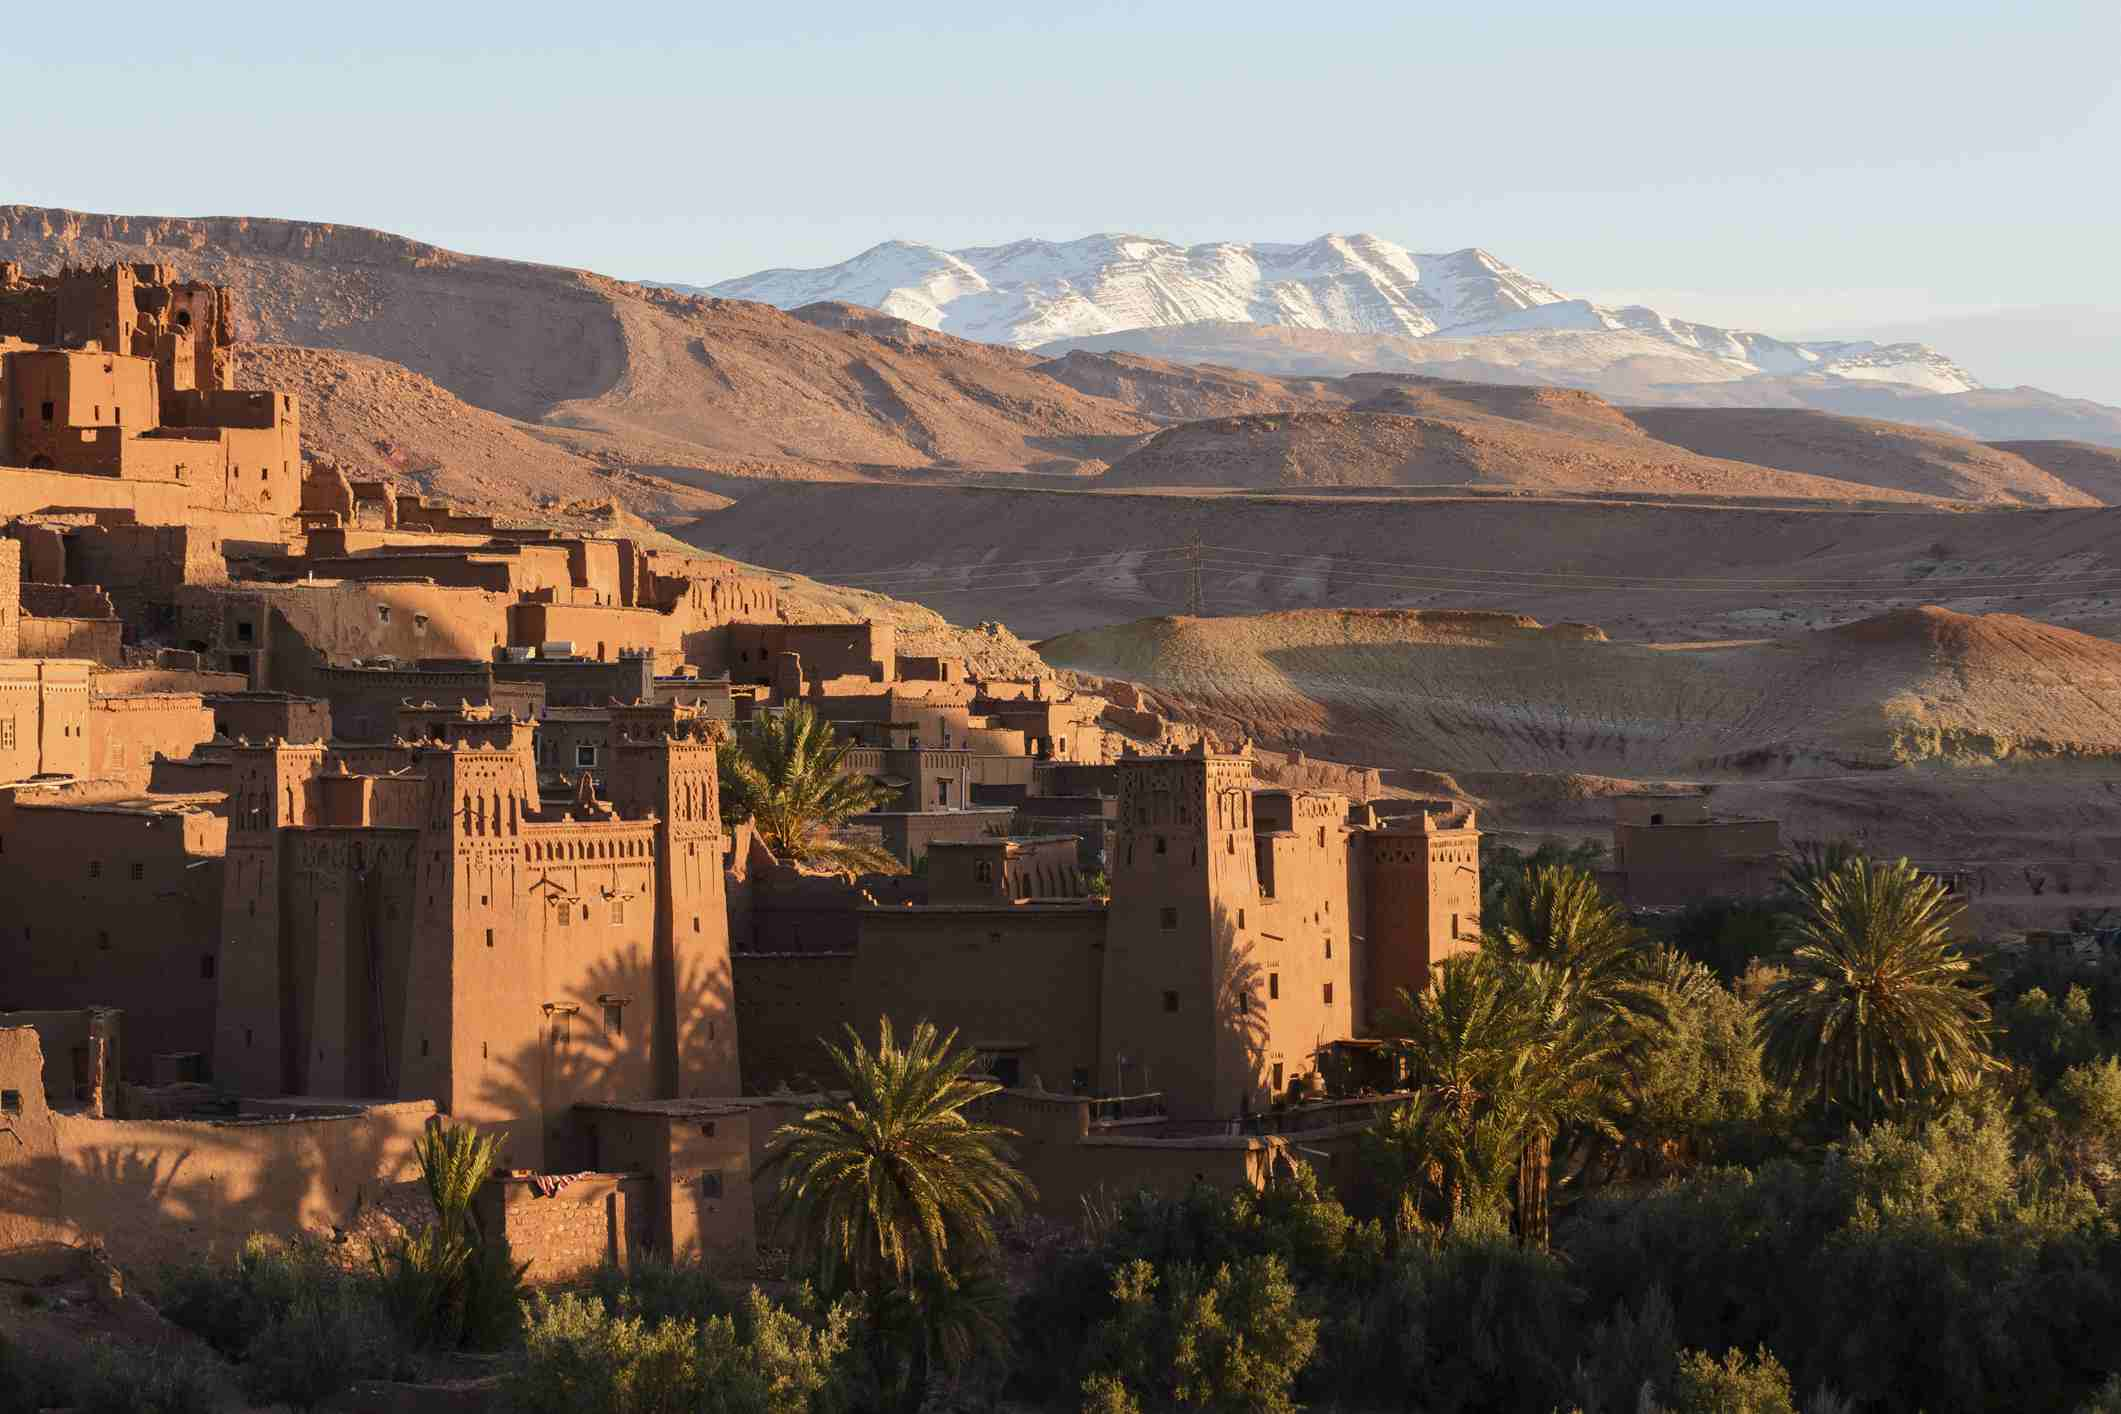 The High Atlas Mountains are visible in the background, Ouarzazate Province, Morocco